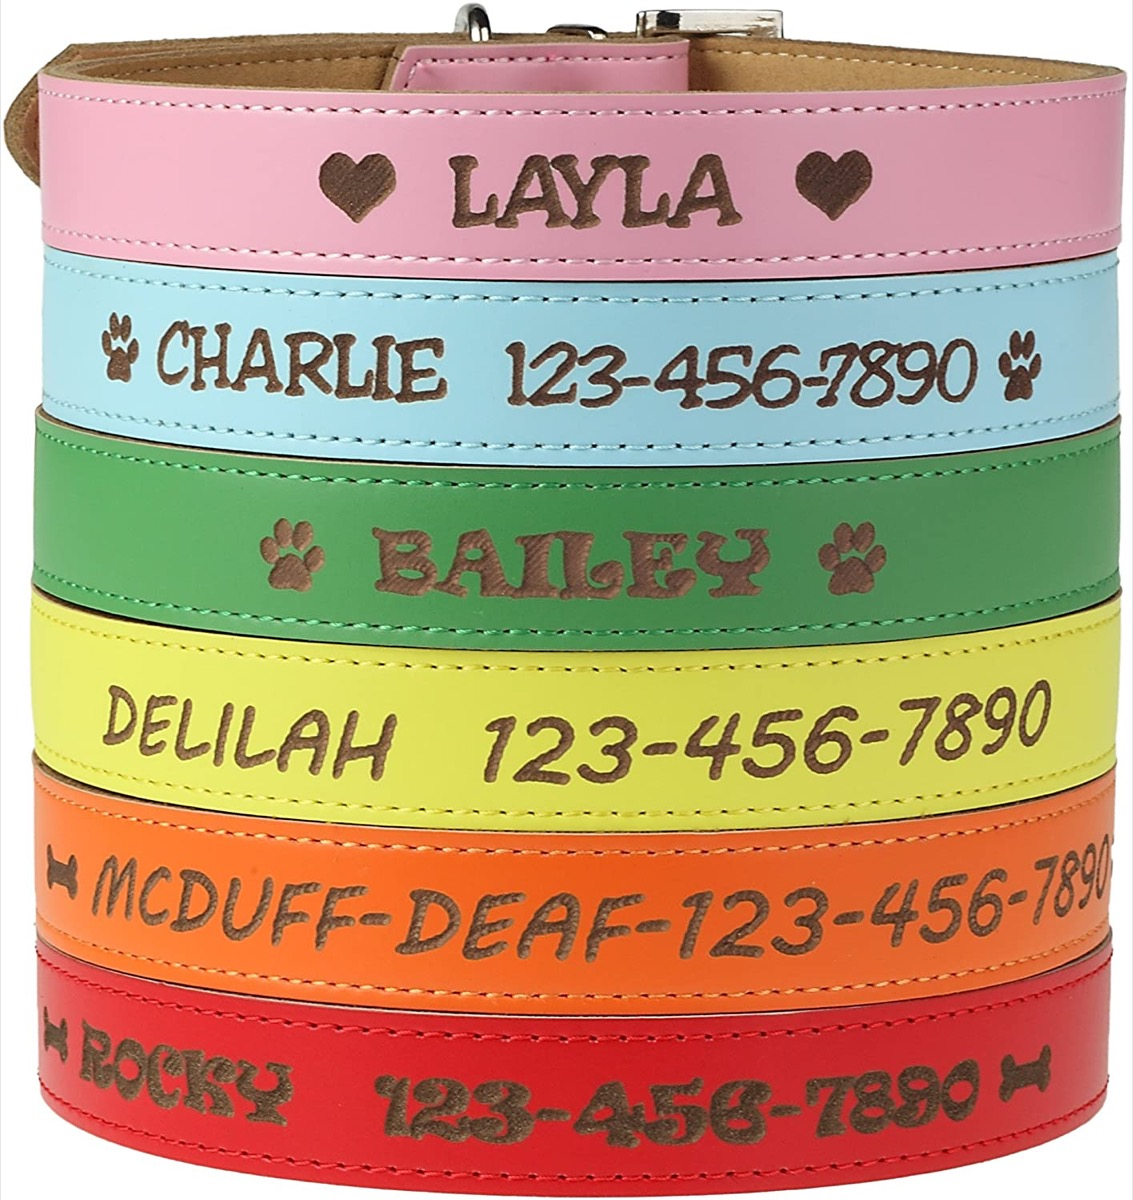 Engraved dog collars in many colors